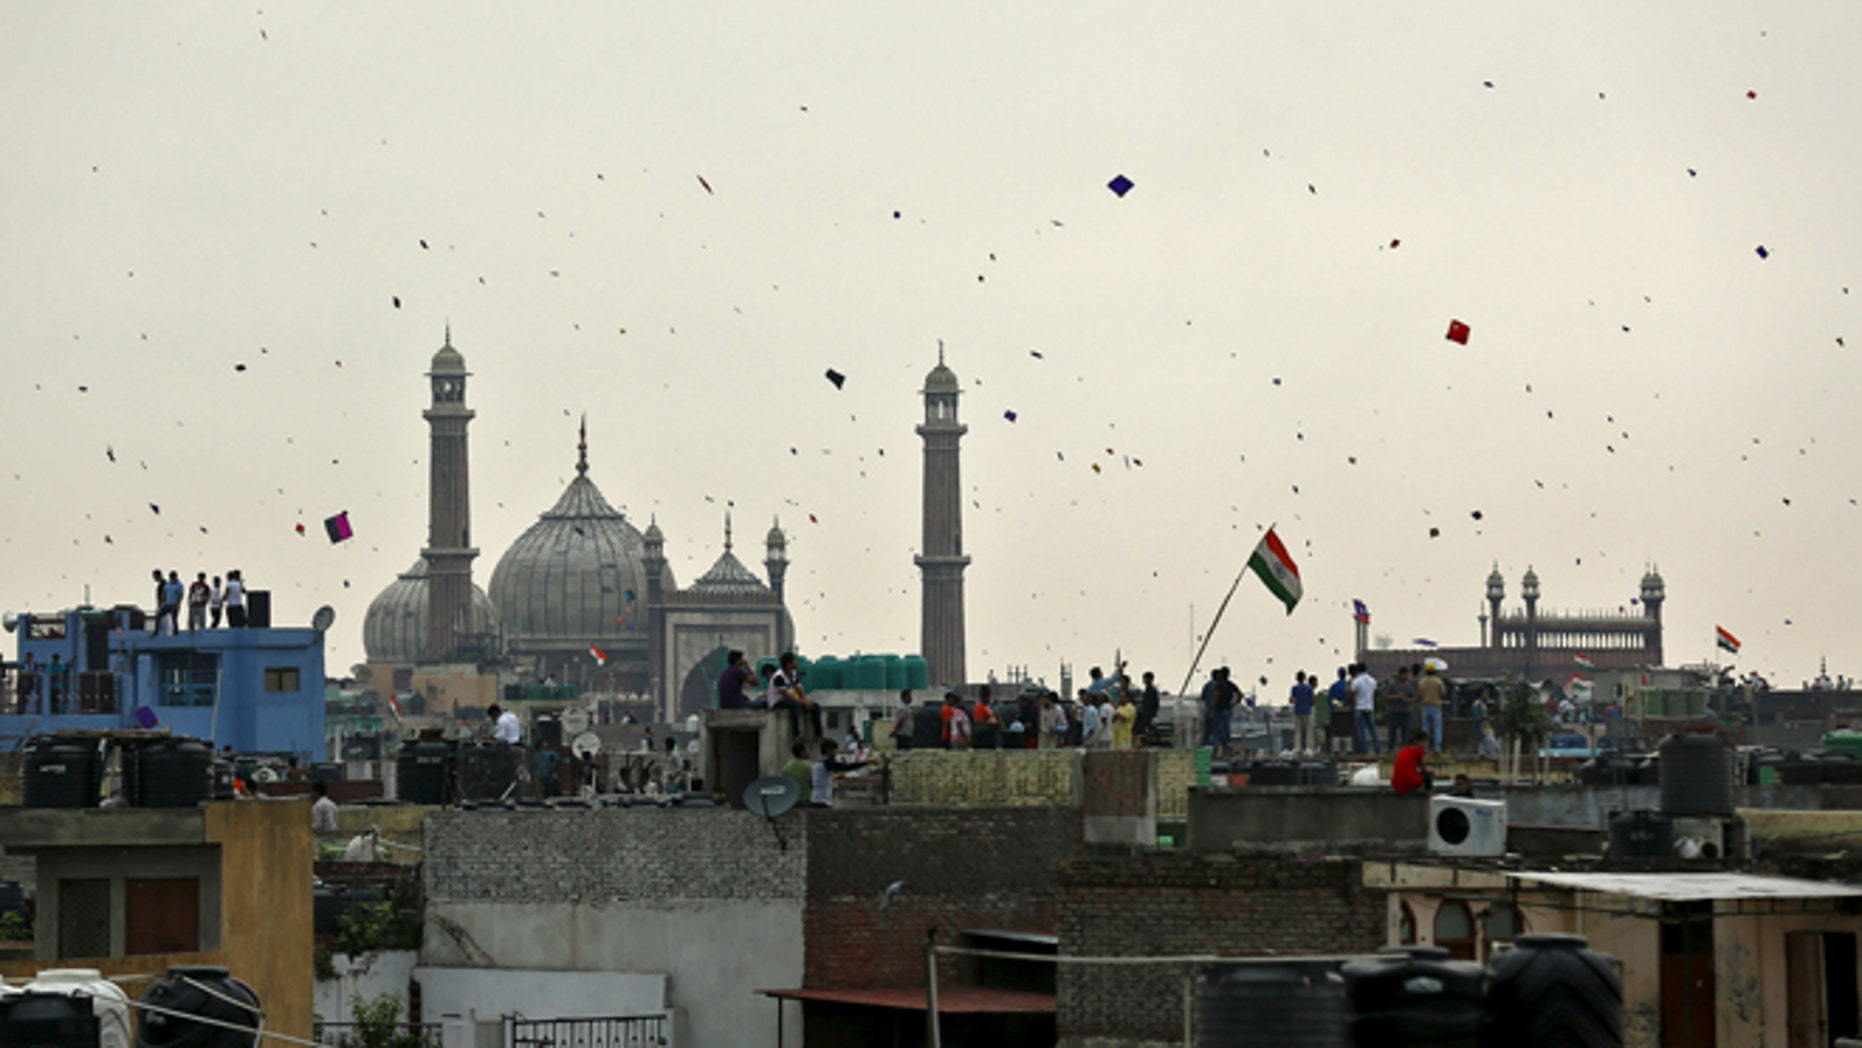 Indian police said three people died after their throats were slit by a glass-coated kite string during the country's Independence Day celebration.